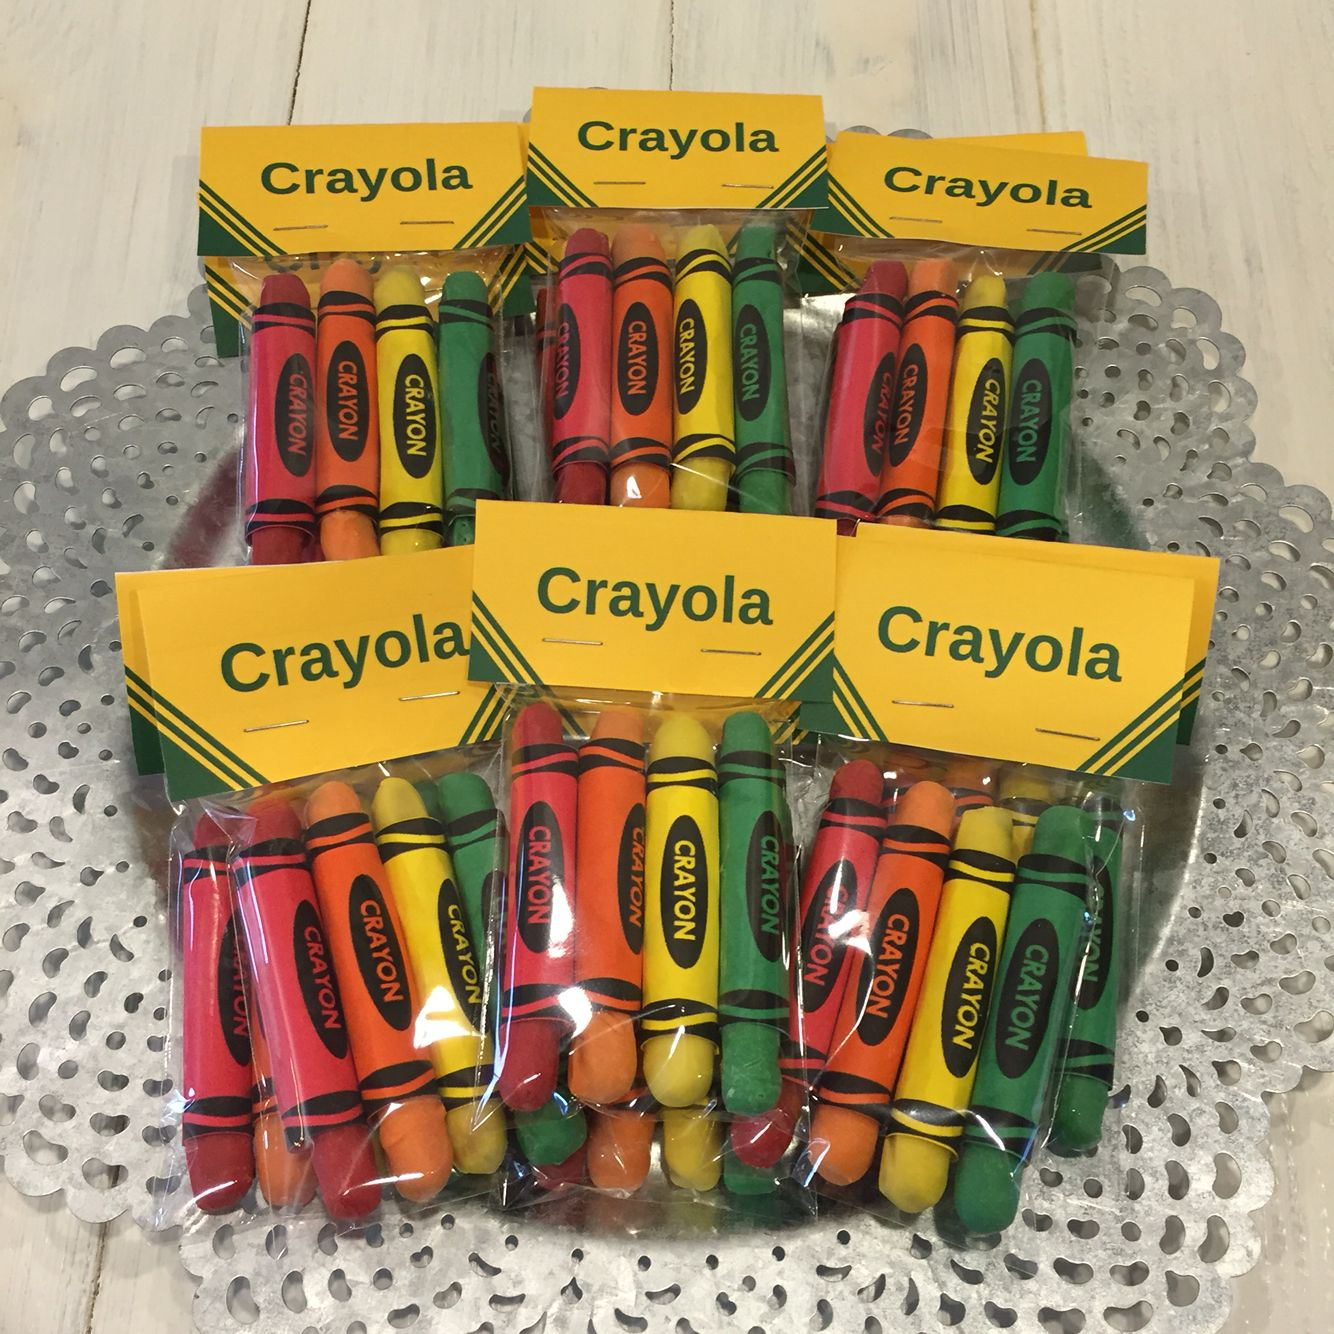 Chocolate Dipped Pretzel Sticks For Color Crew Party Crayola Crayon Favors